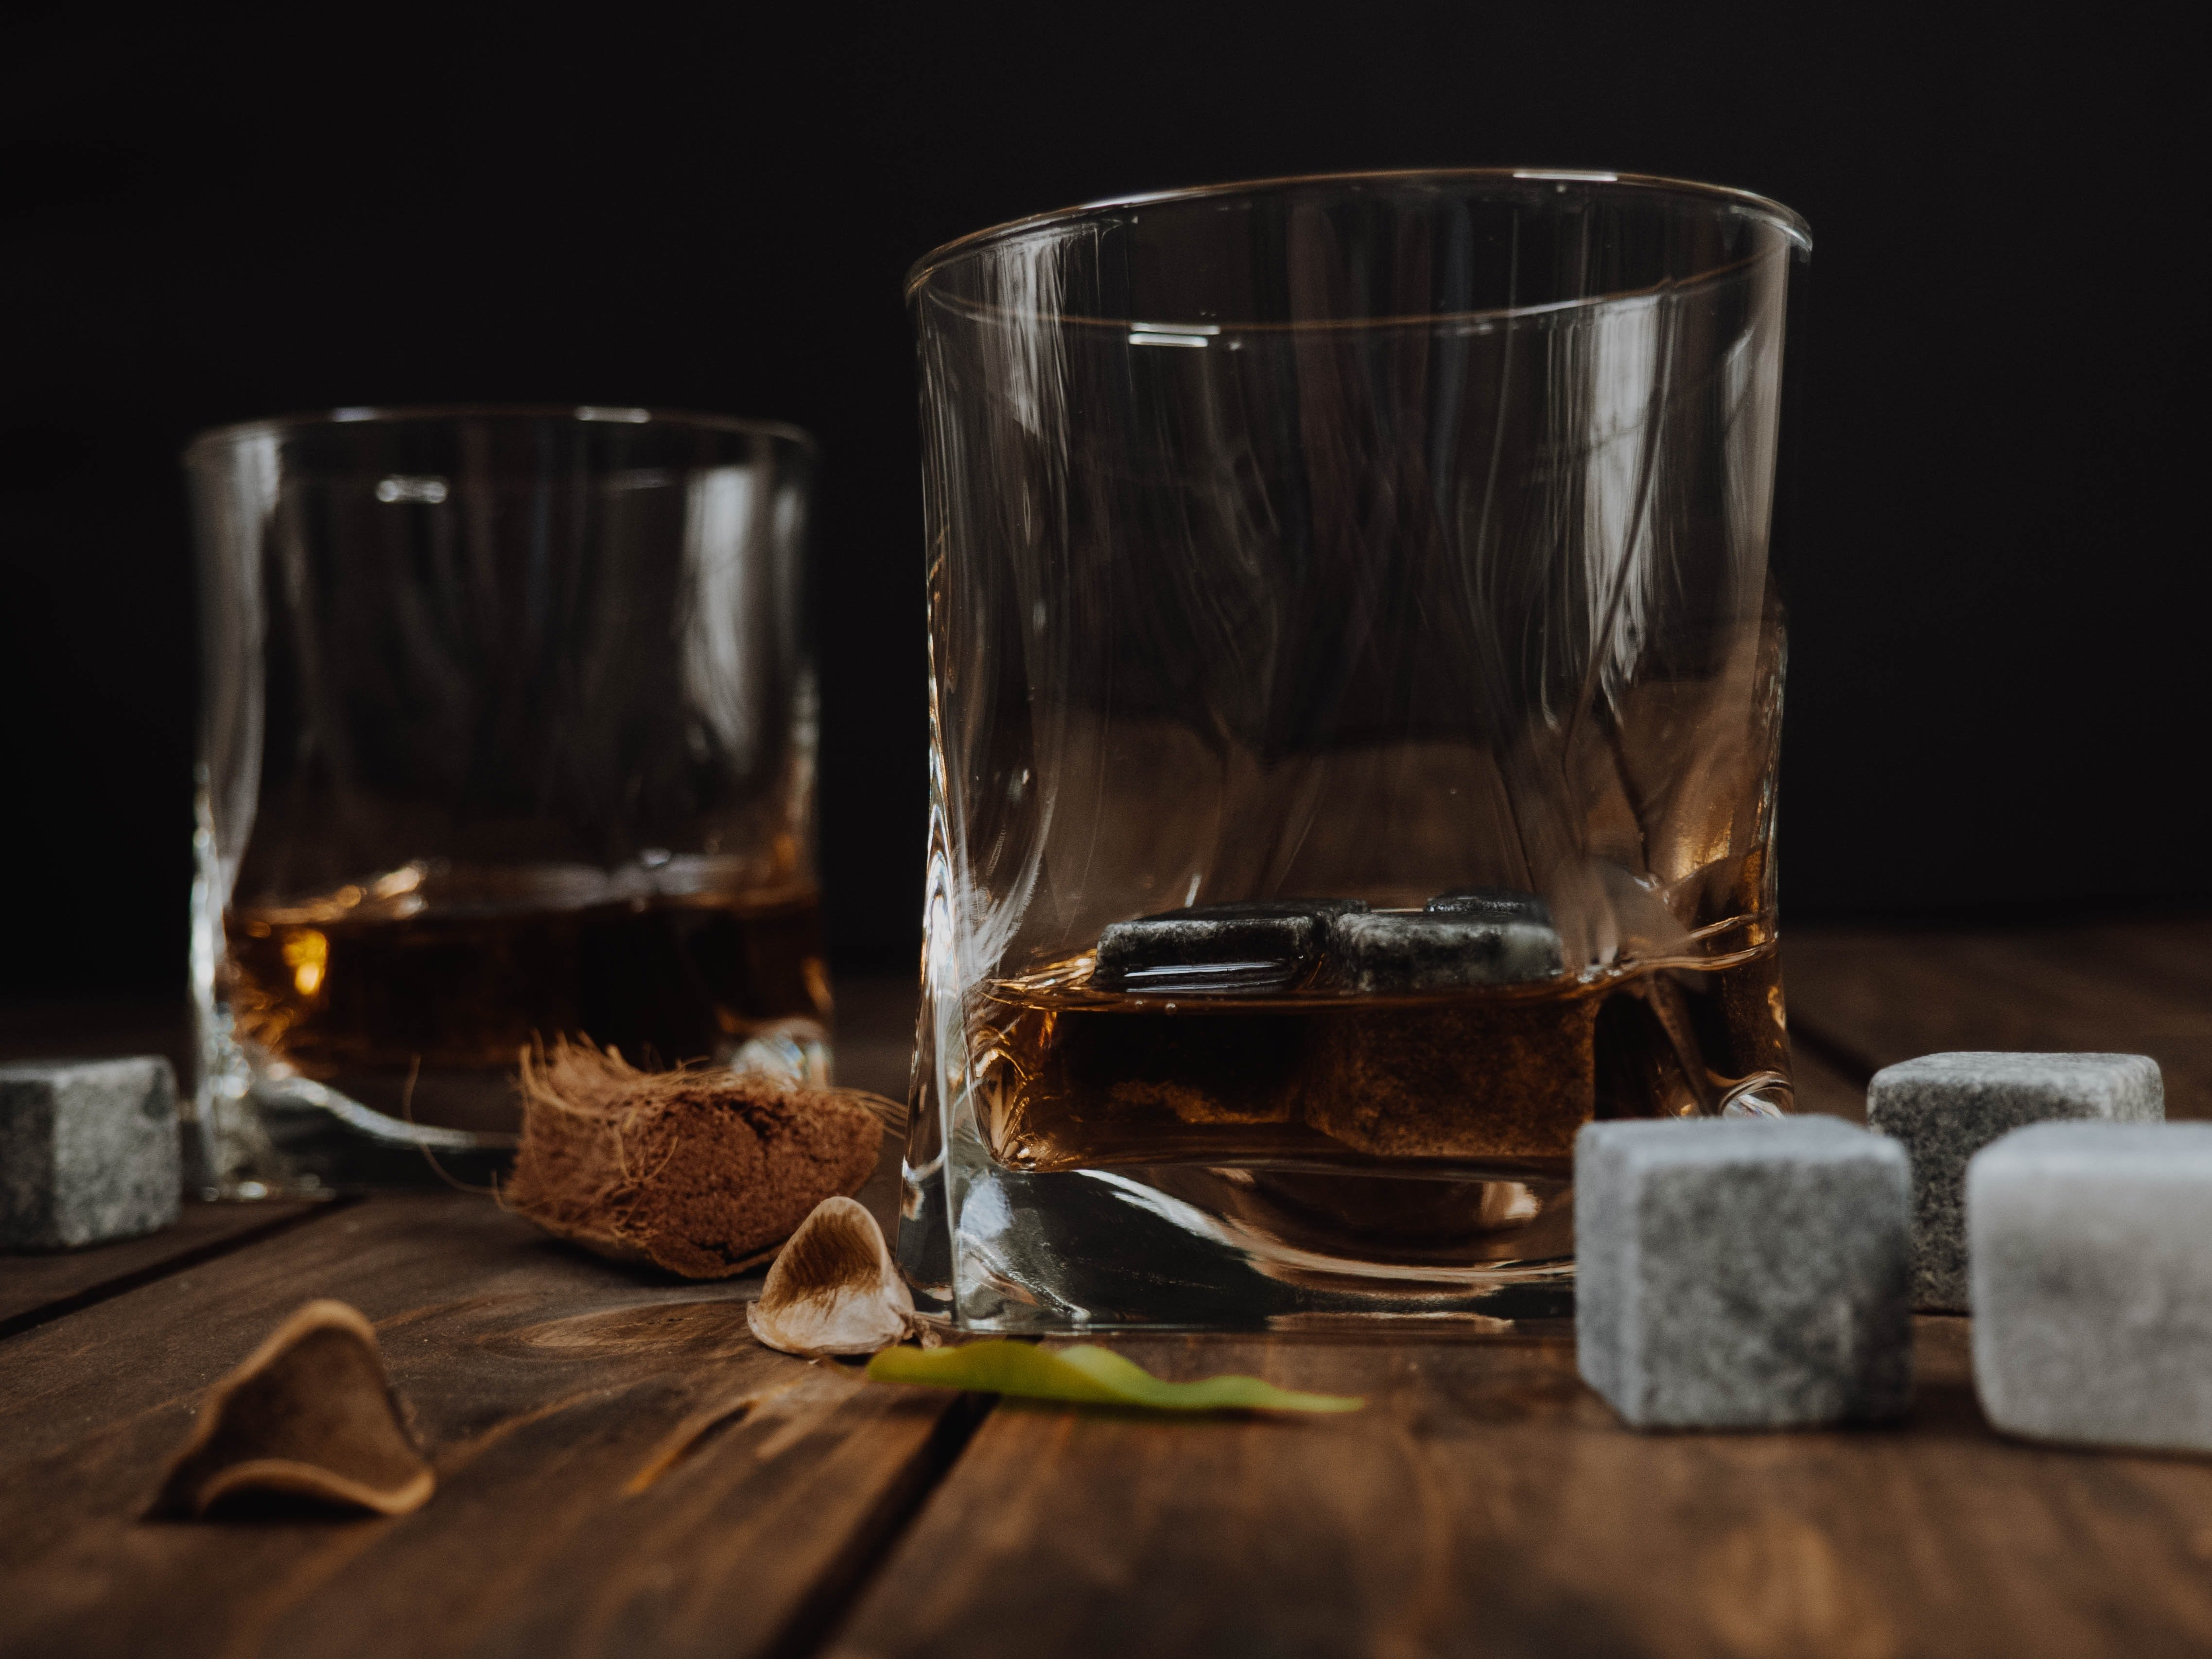 A refreshing glasses of liquor for two.   Photo: Pexels